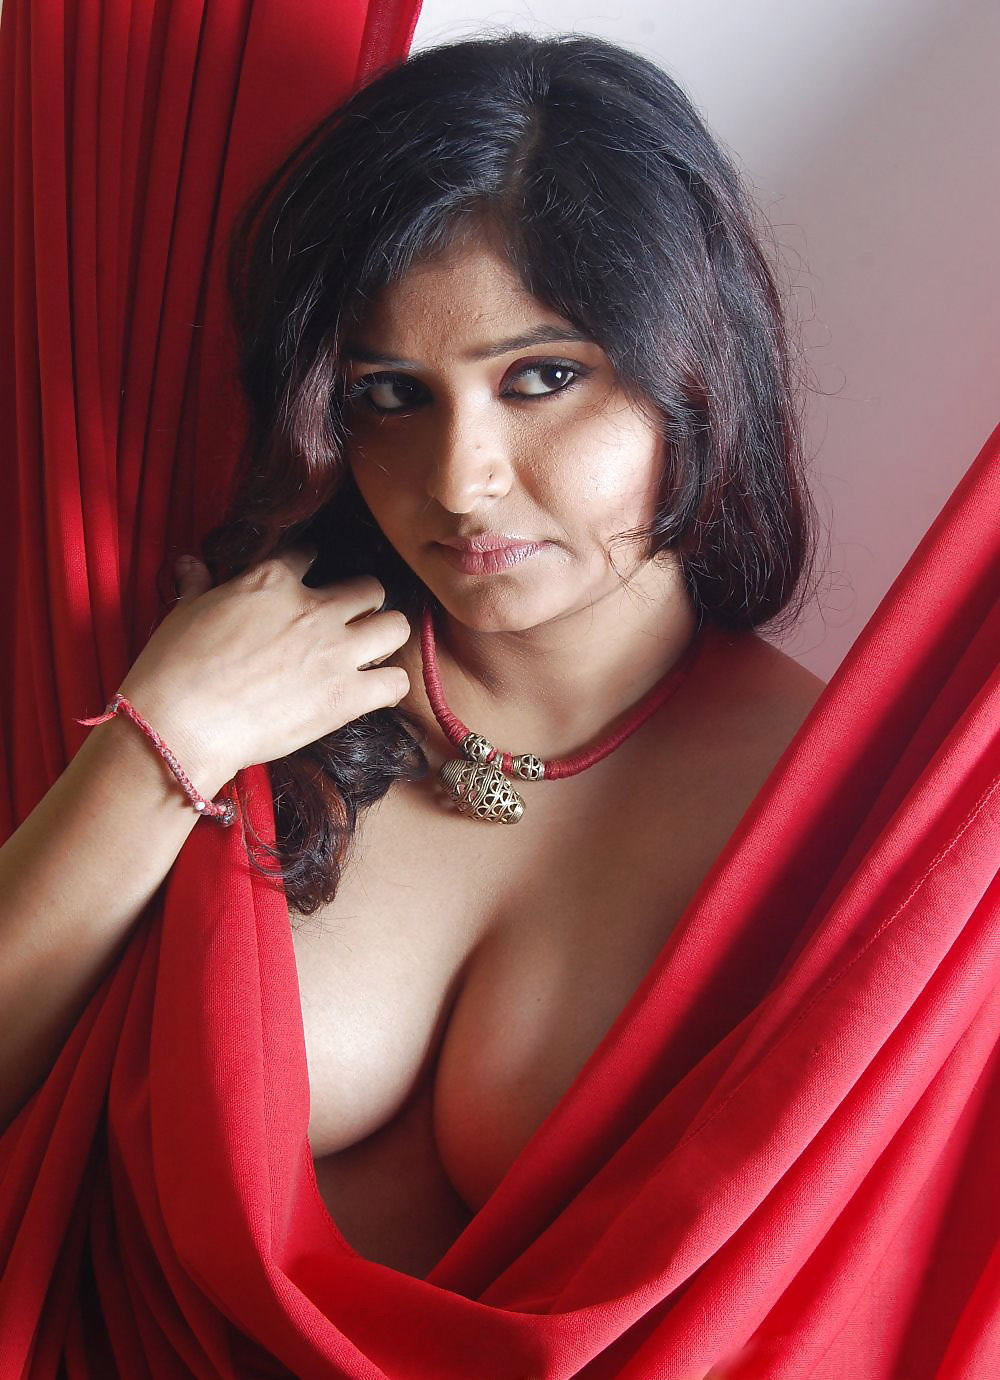 nude girls tamil hd